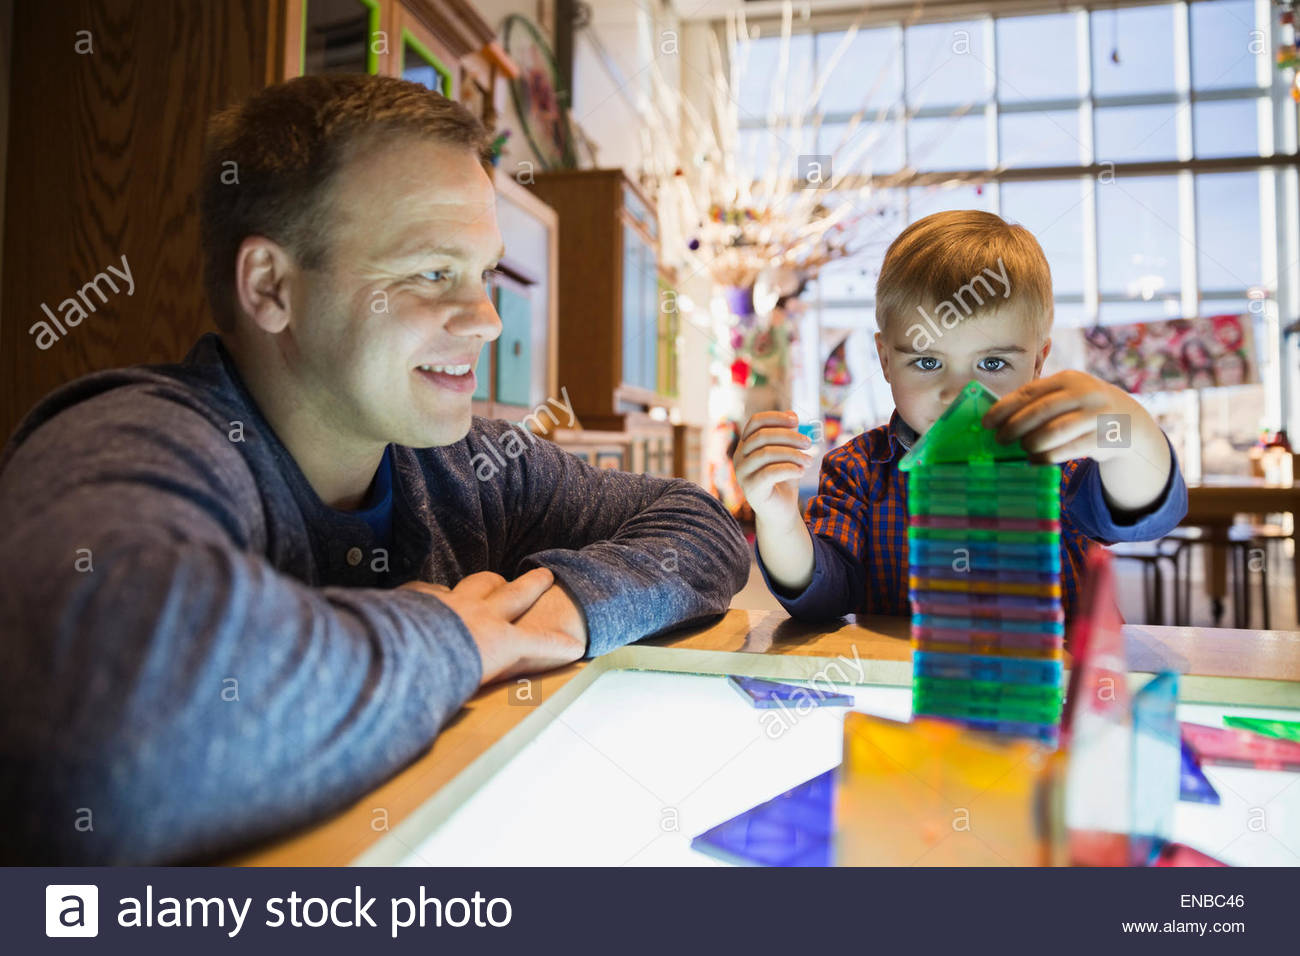 Father watching son stack model pieces science center - Stock Image